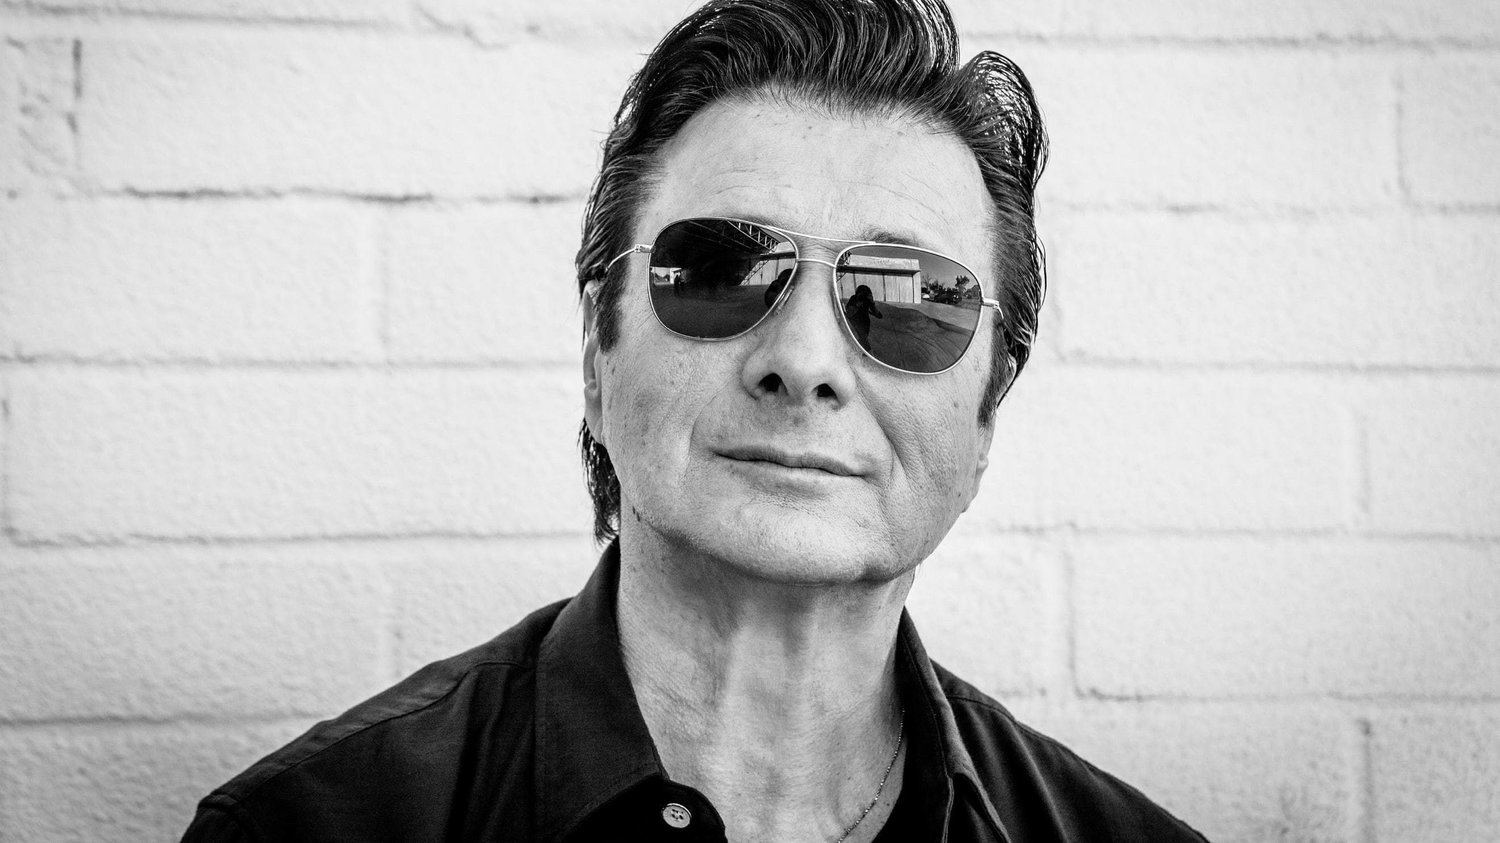 Steve Perry returns with a new interview ahead of album release.